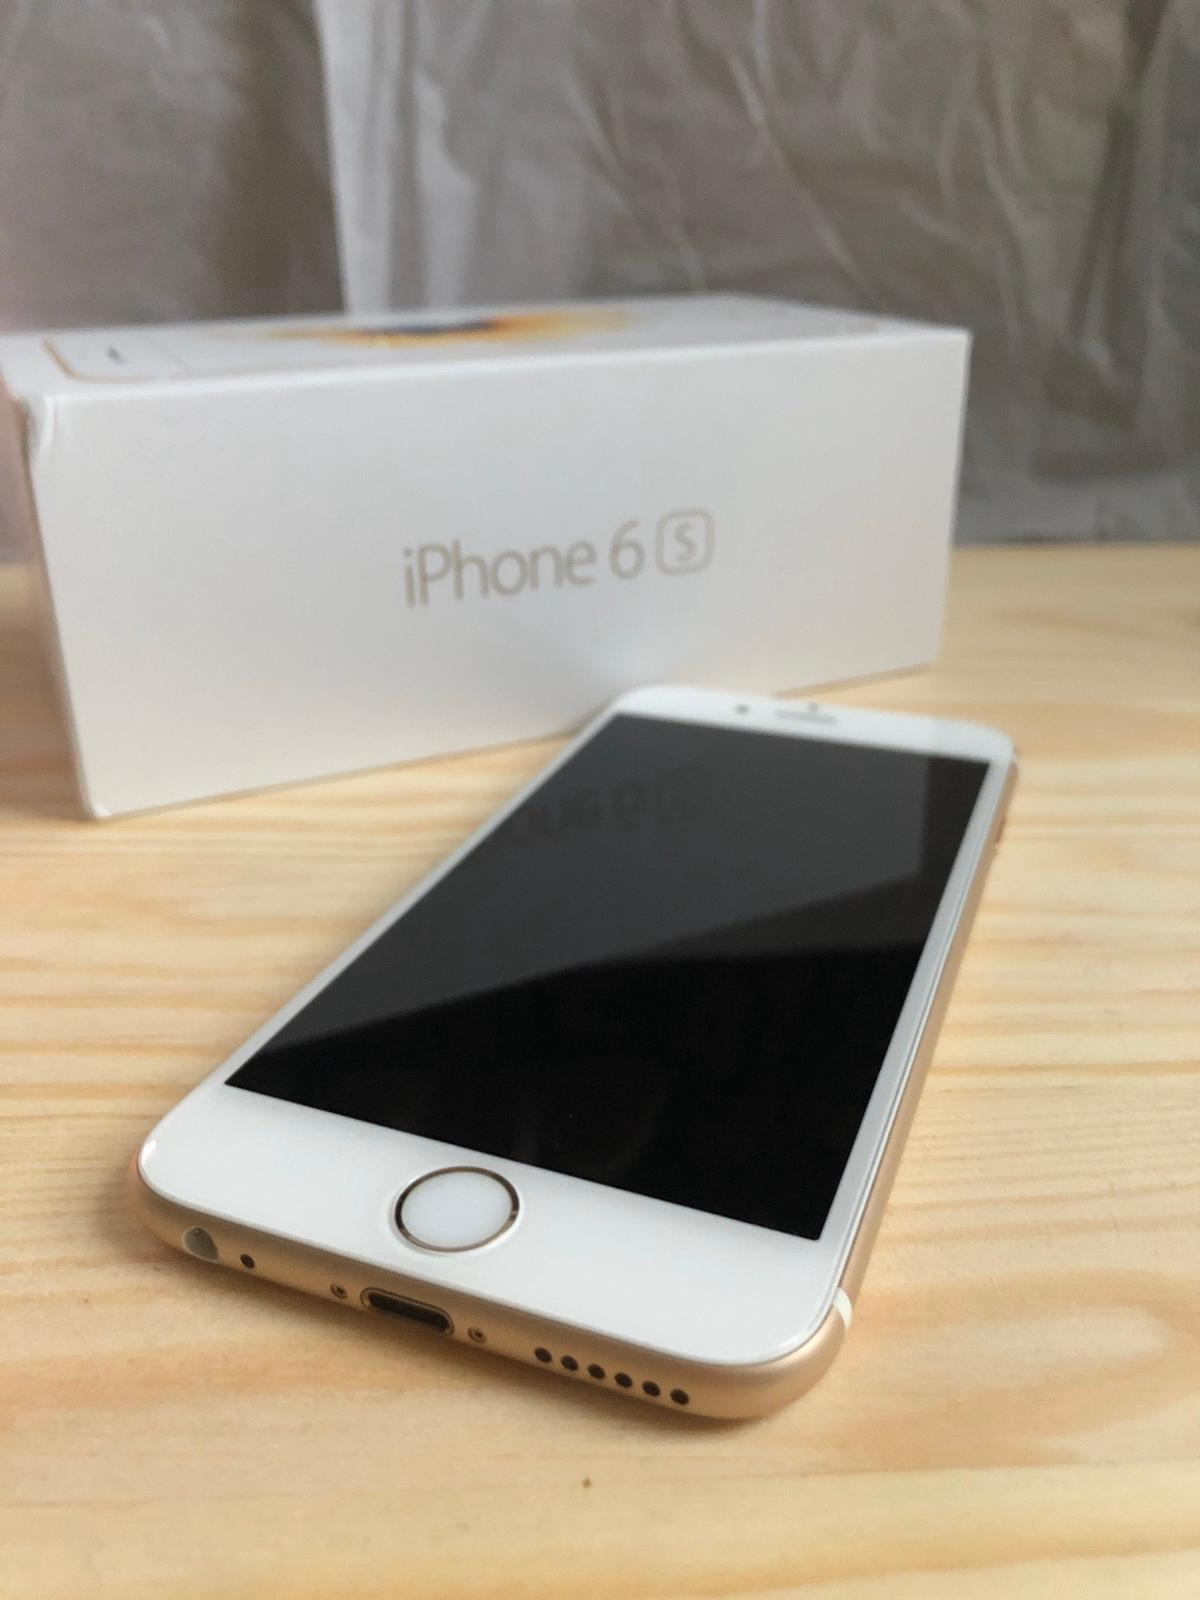 iPhone 6s in gold with 64GB storage  Currently locked to EE network.  NEW, not used, no scratches or marks!  Comes in original box with charger.